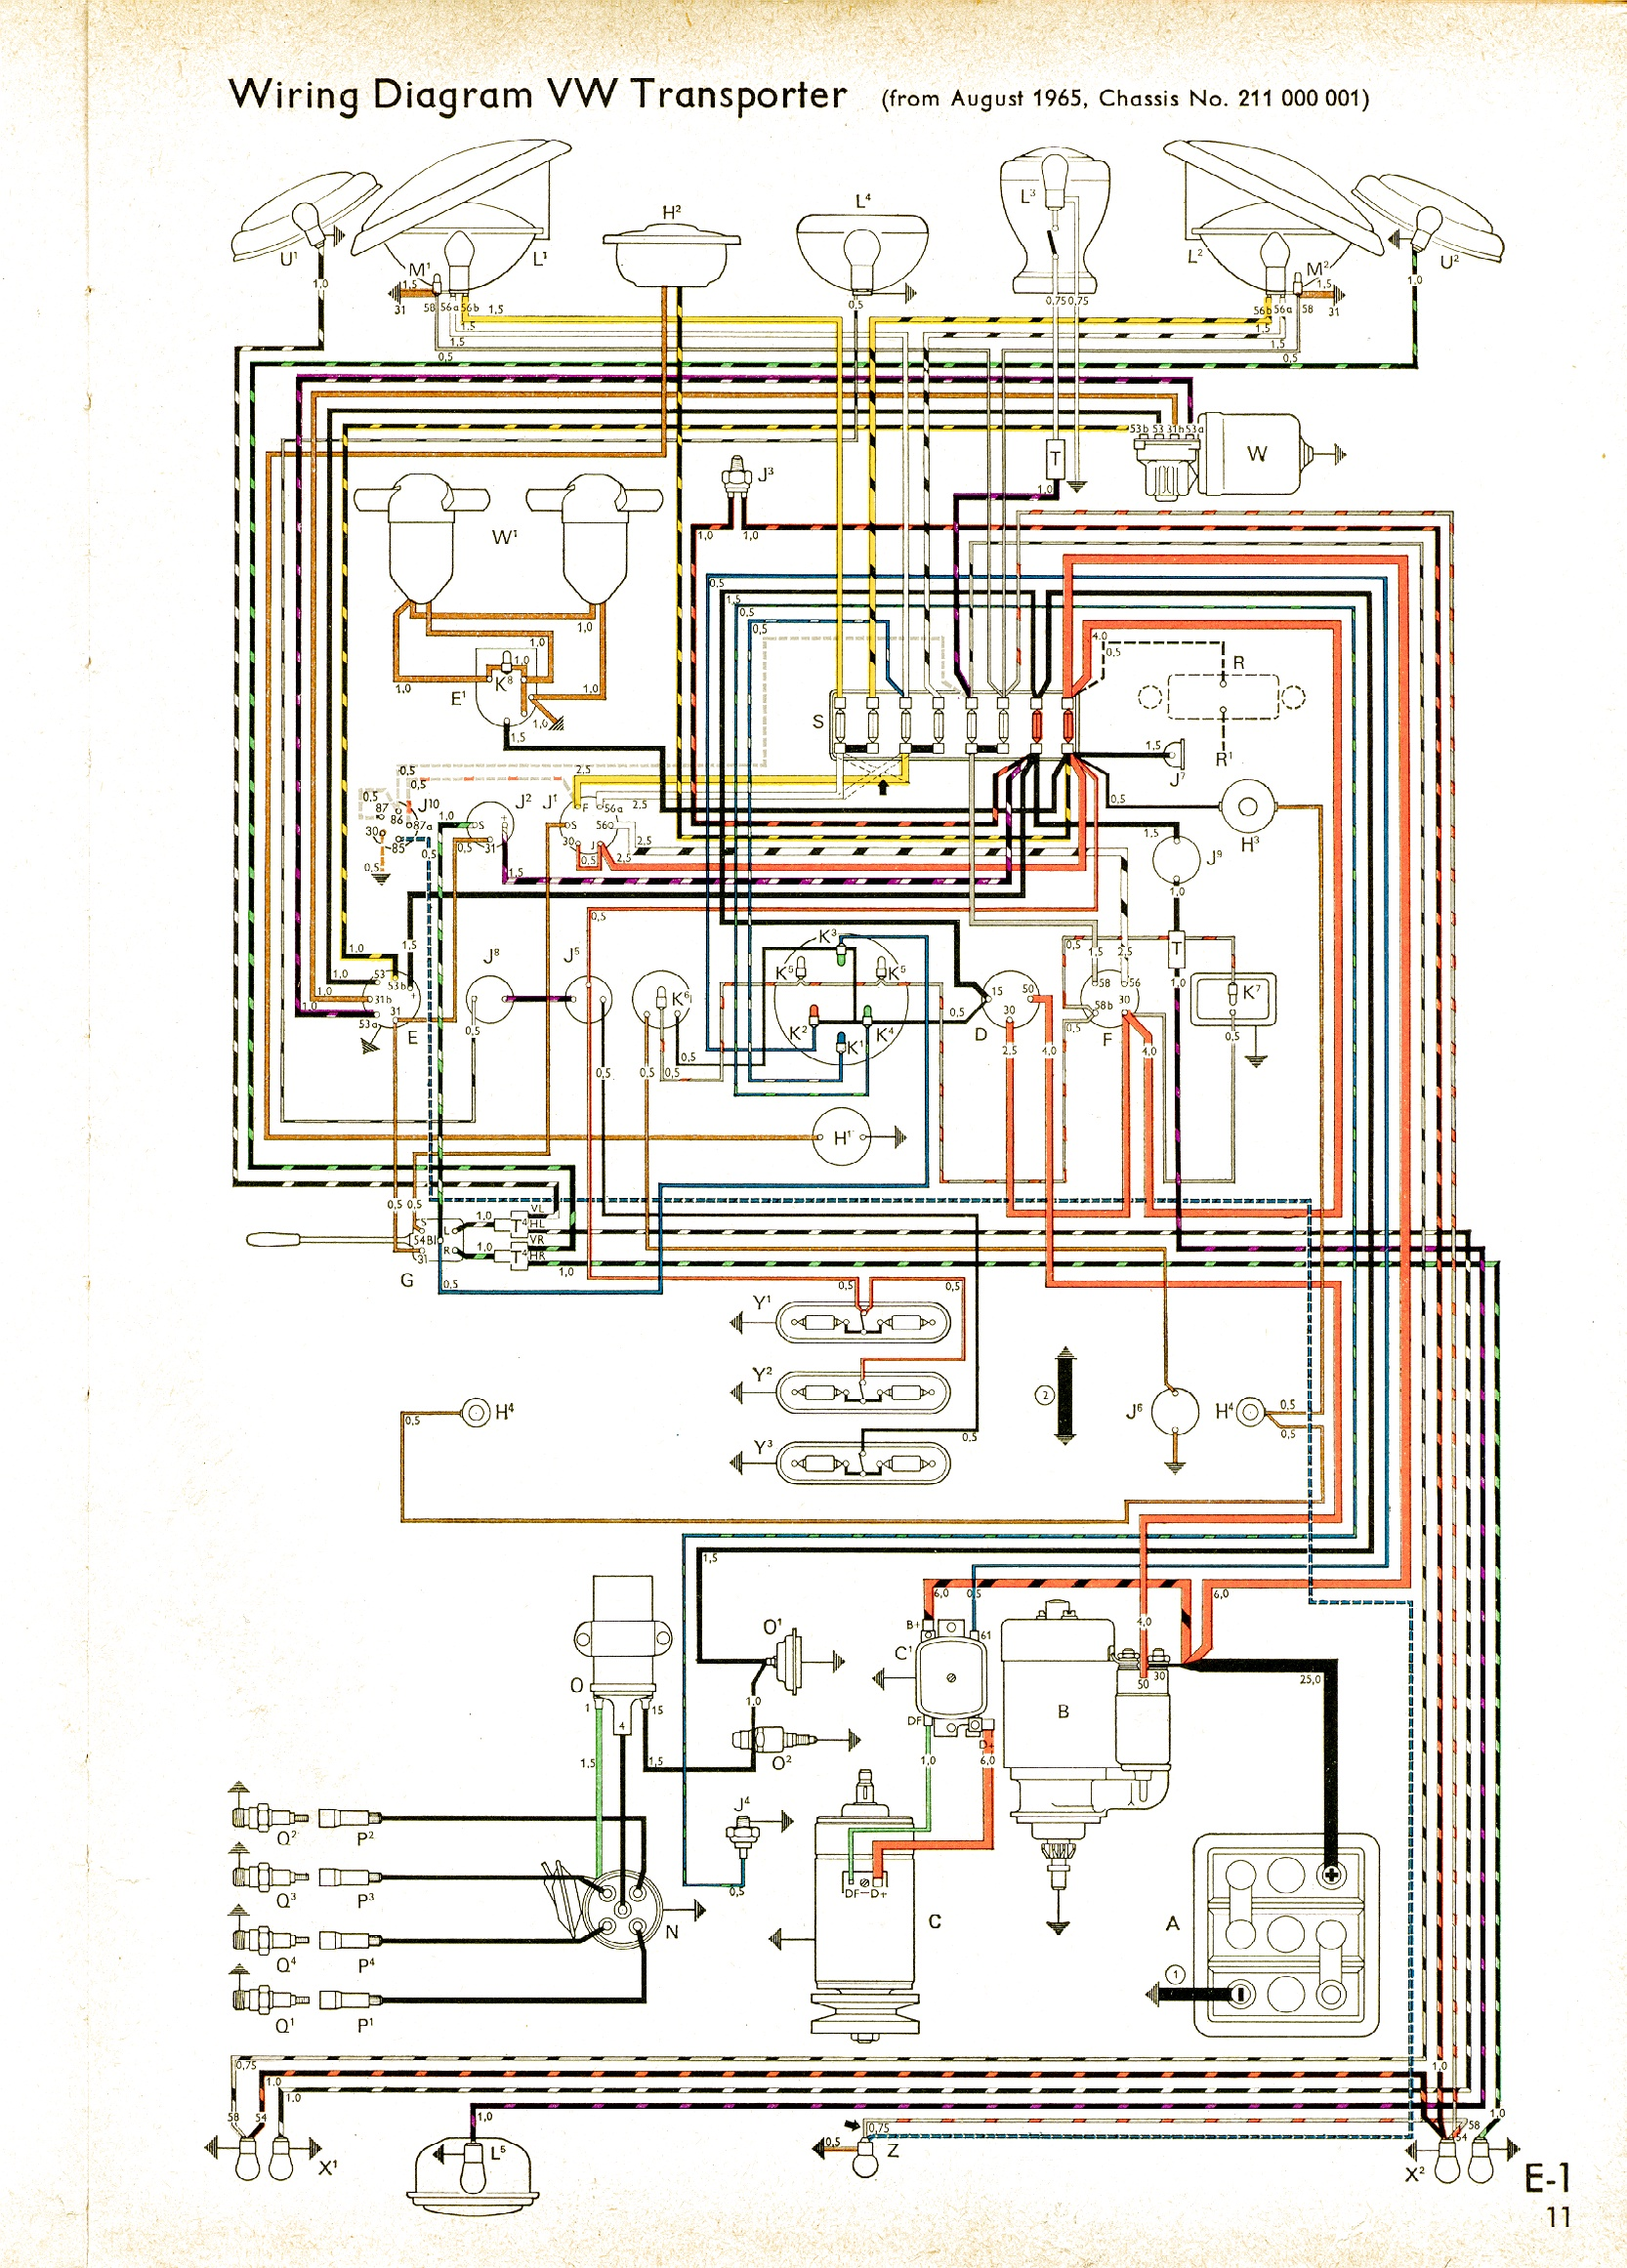 thesamba com split bus view topic 1965 type 2 wiring diagram image have been reduced in size click image to view fullscreen